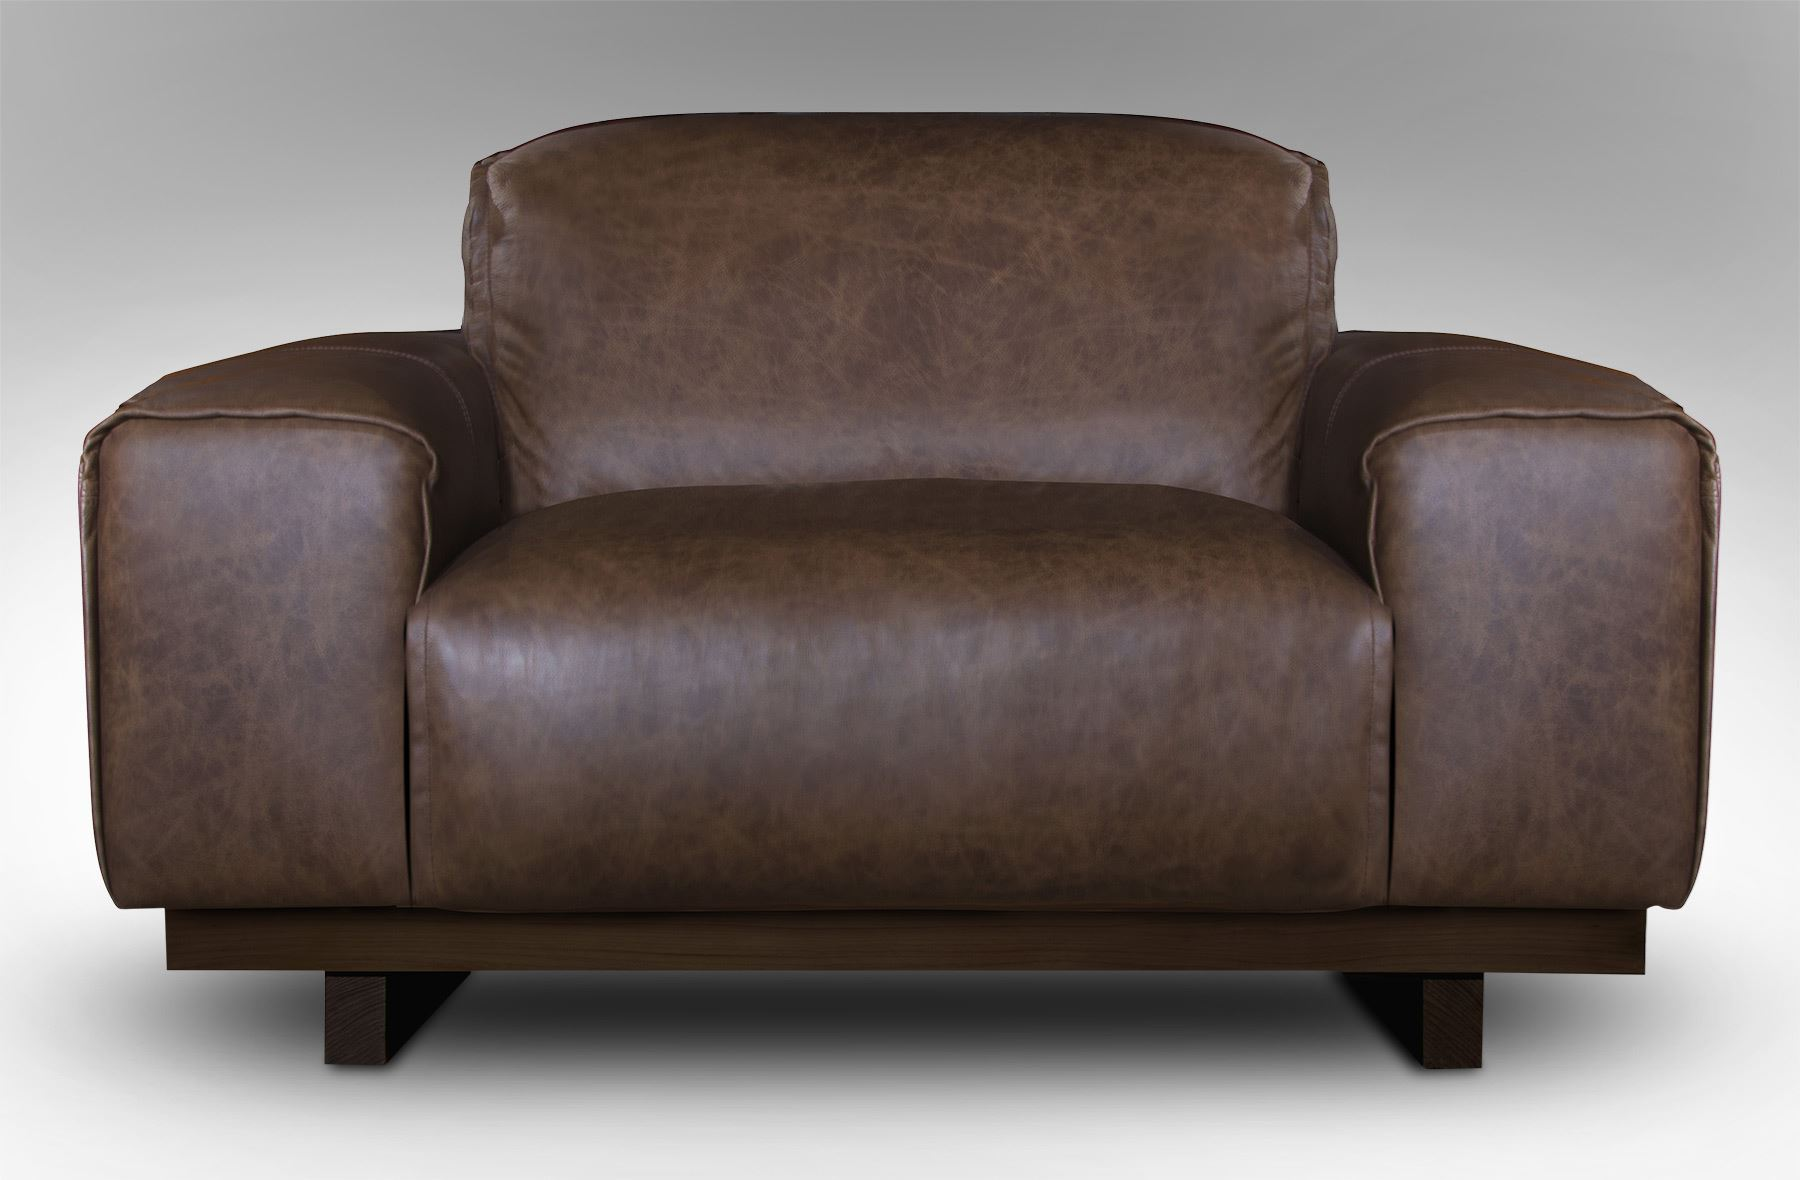 arm furniture of leather desert picture armchair rice chair roland single